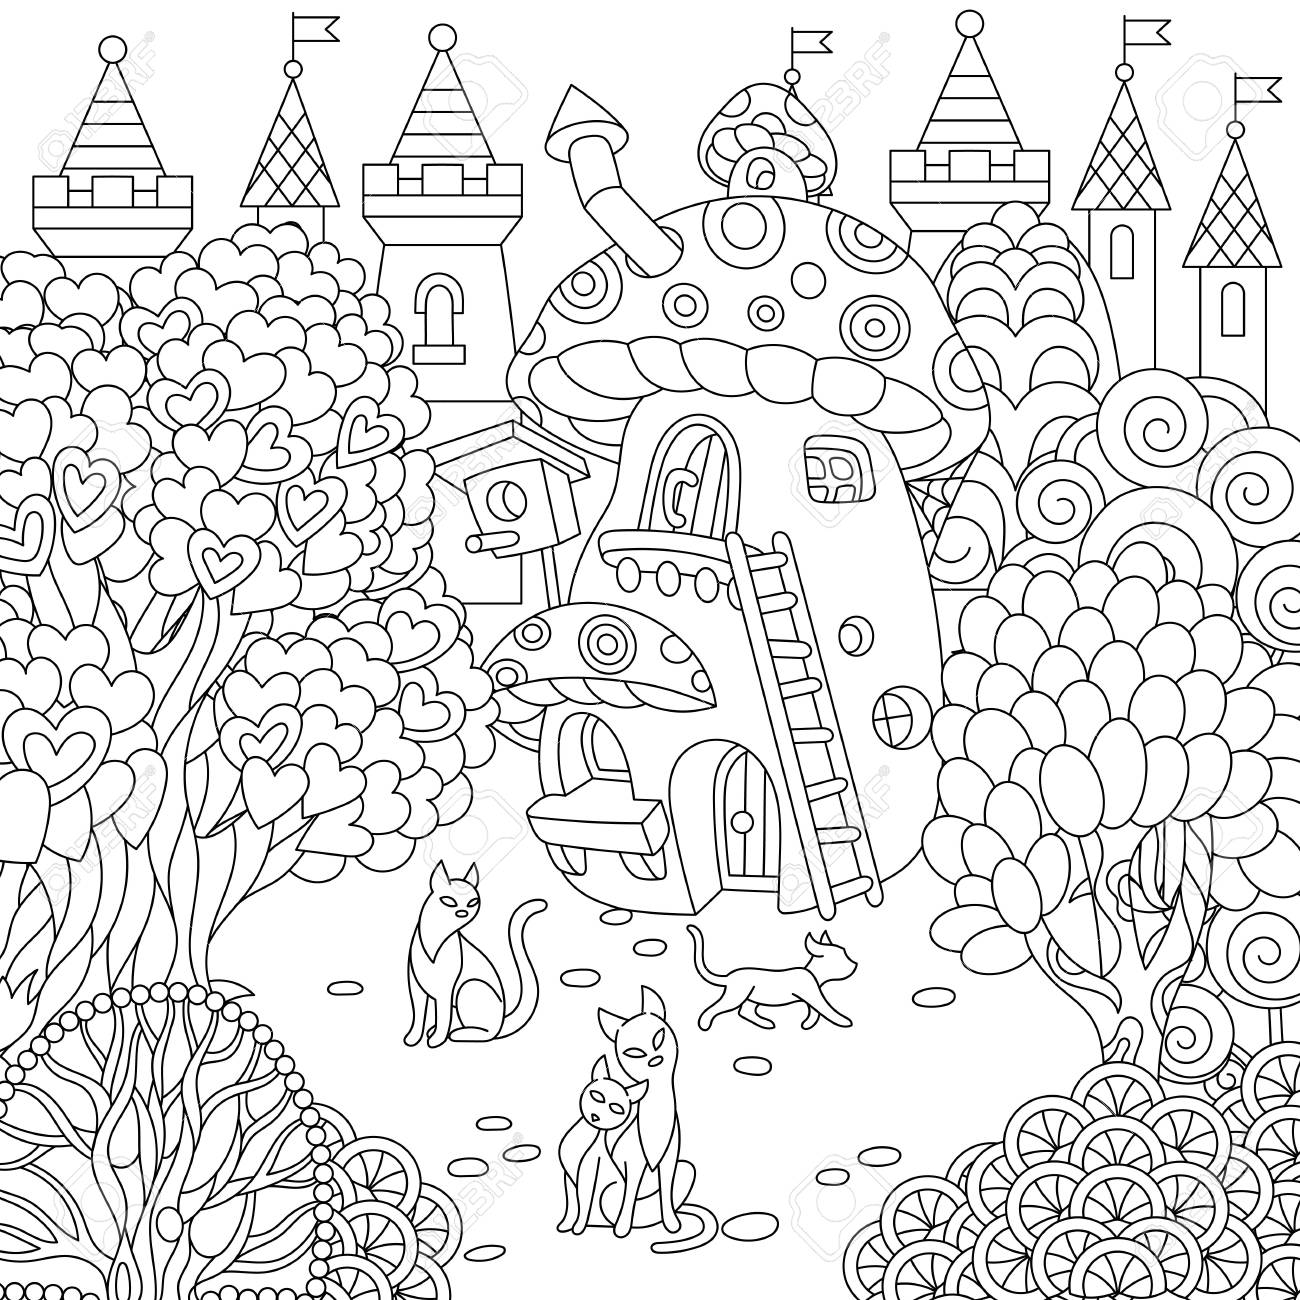 Fantasy town fairytale mushroom house magic heart shaped trees and cats coloring page